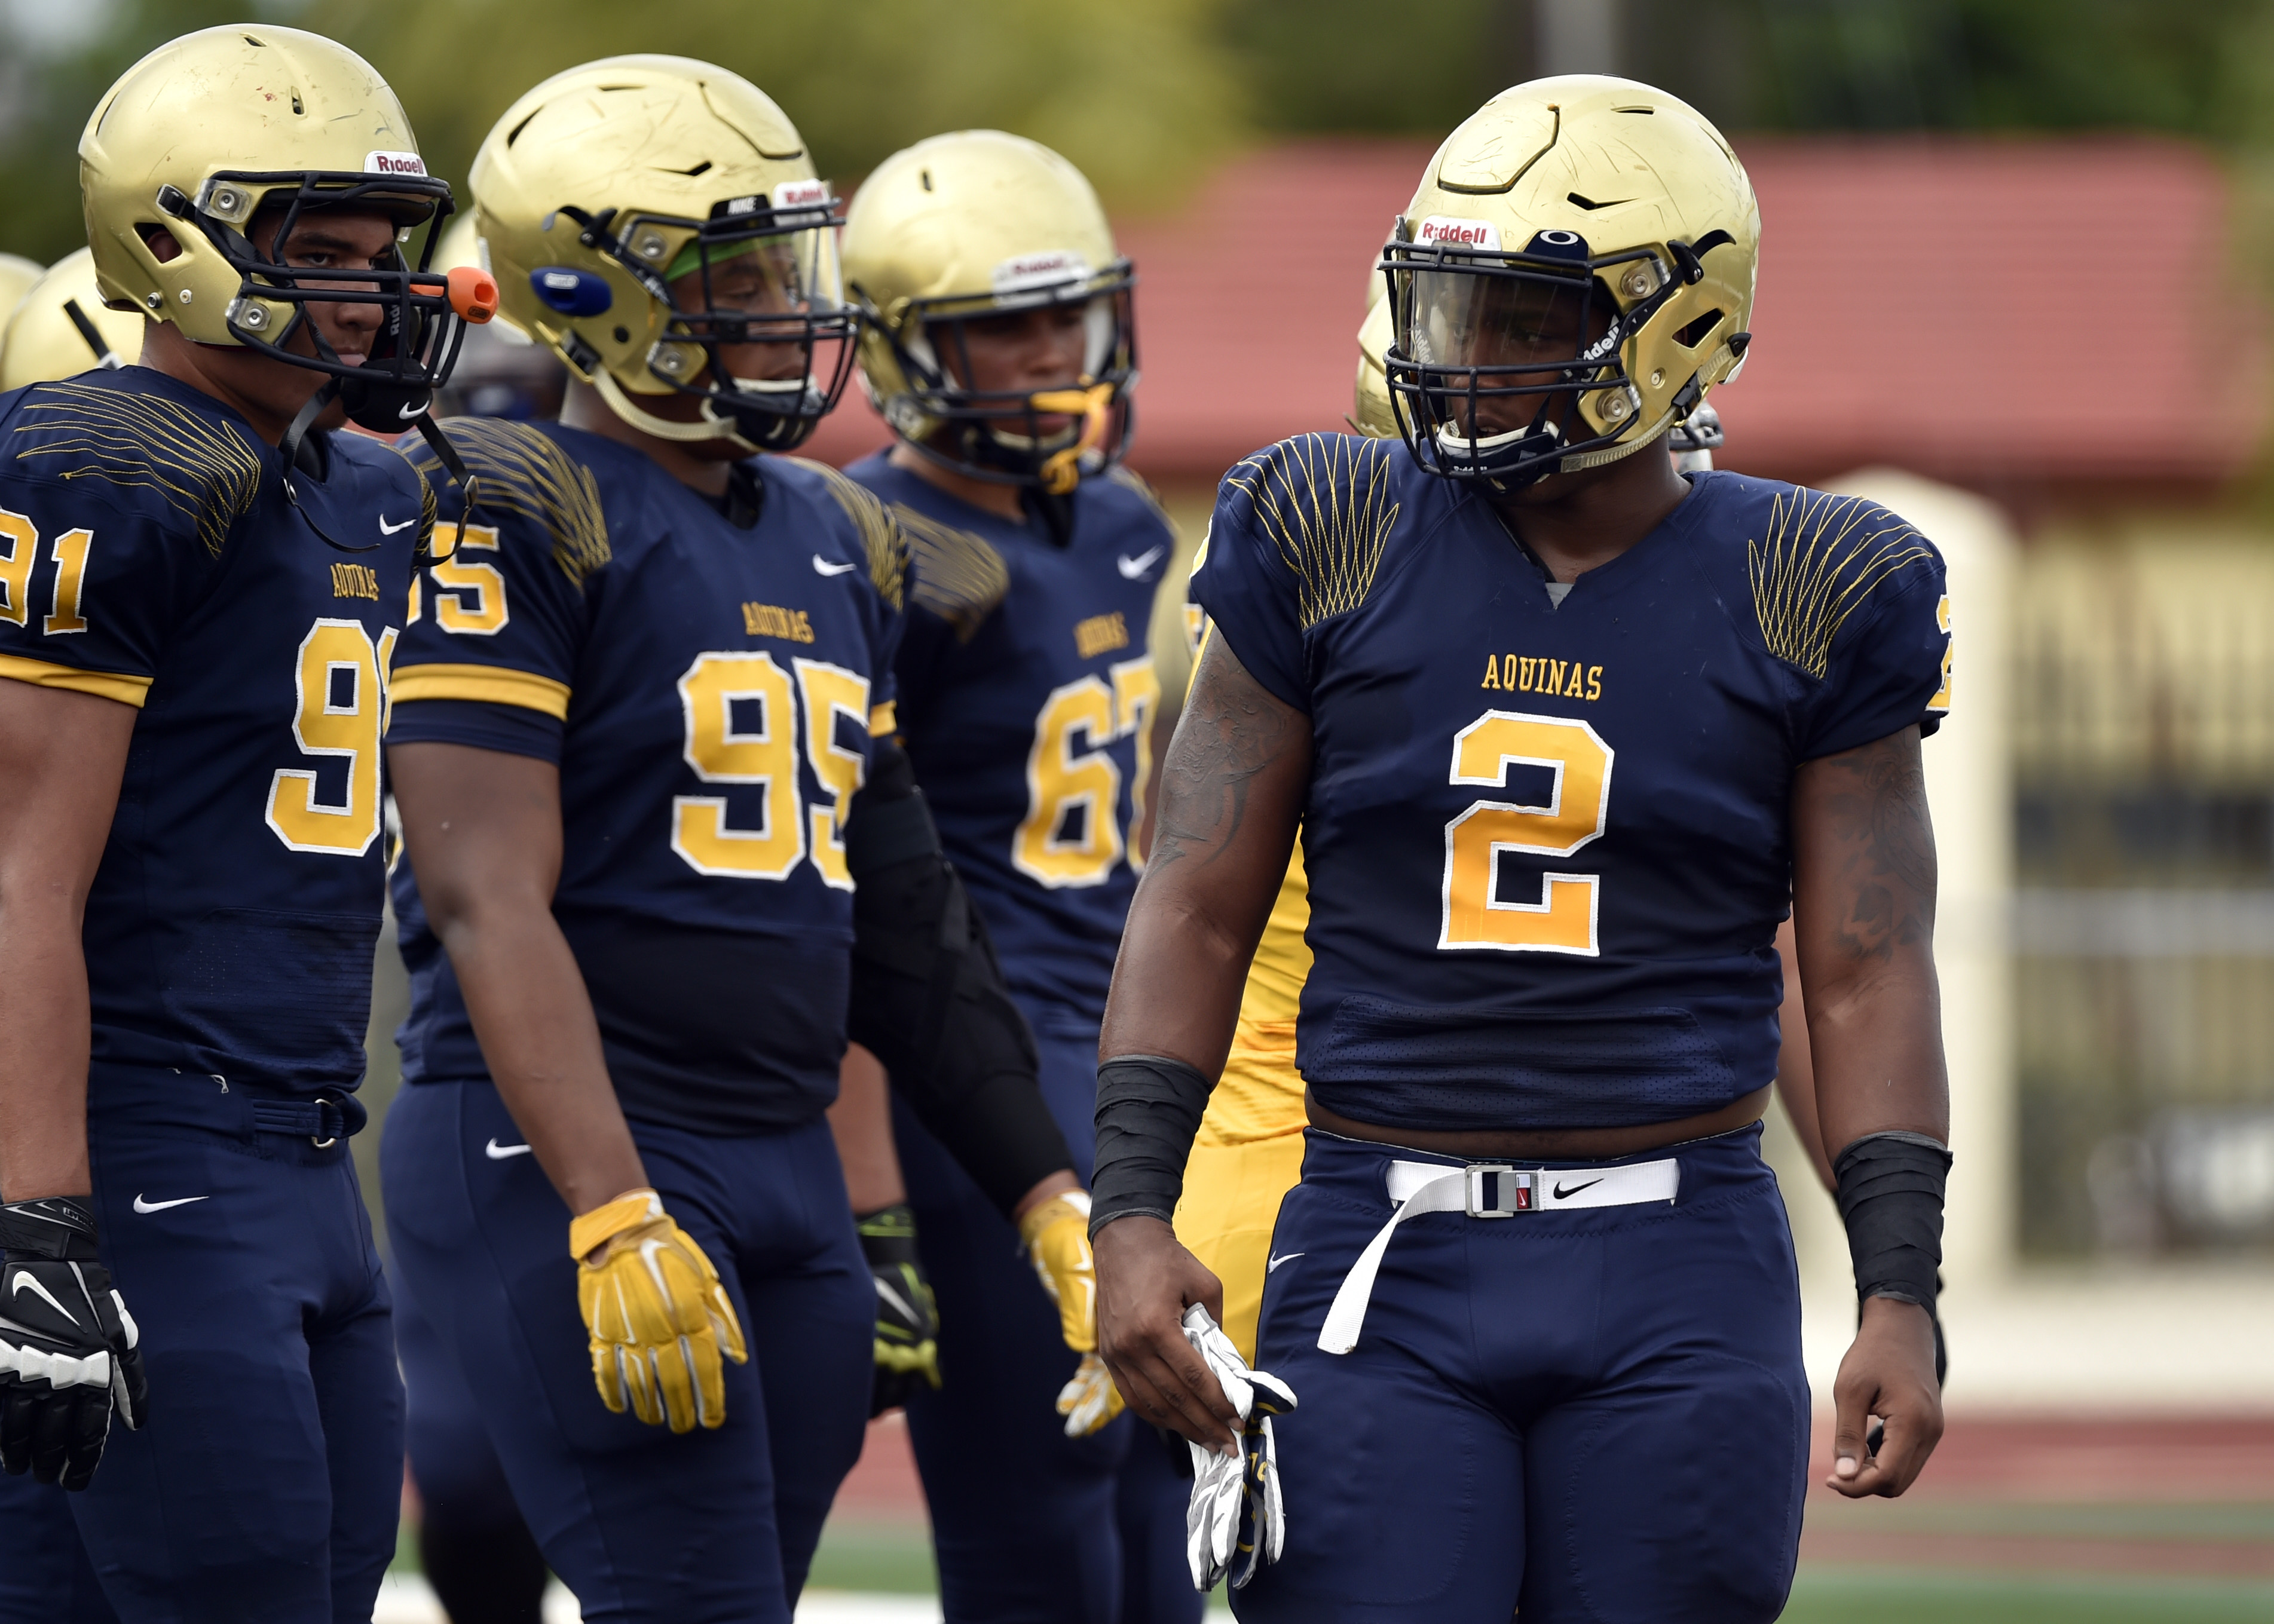 May 19 2016 -- Fort Lauderdale, FL, U.S.A -- St. Thomas Aquinas defensive lineman Tyler Dunning (2). St. Thomas Aquinas, the likely No. 1 team in the preseason Super 25, is hosting its annual gold and blue inter squad scrimmage at the school's stadium. -- Photo by Steve Mitchell USA TODAY Sports Images, Gannett ORG XMIT: US 134928 St. Thomas Aquin 5/19/2016 [Via MerlinFTP Drop]